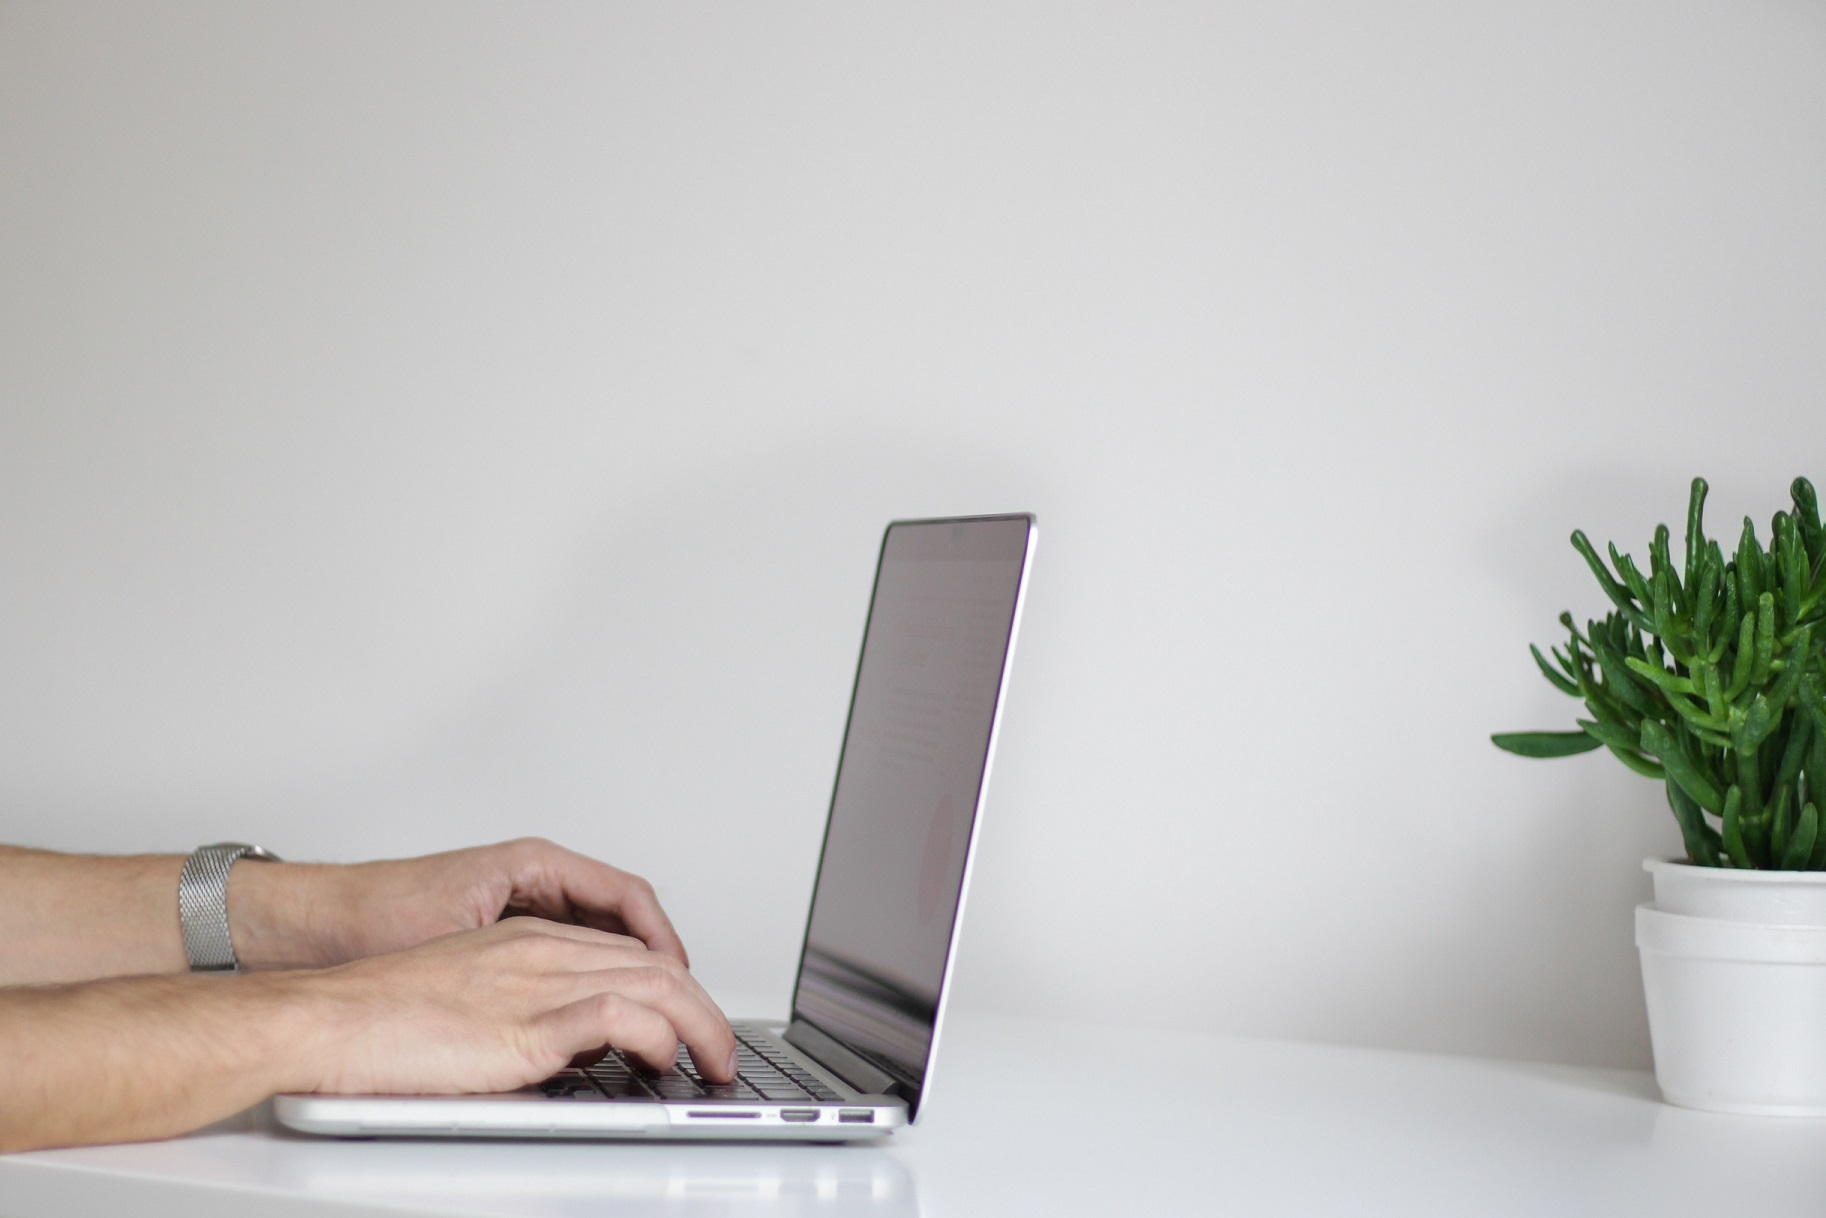 A picture of someone's hands on a laptop keyboard